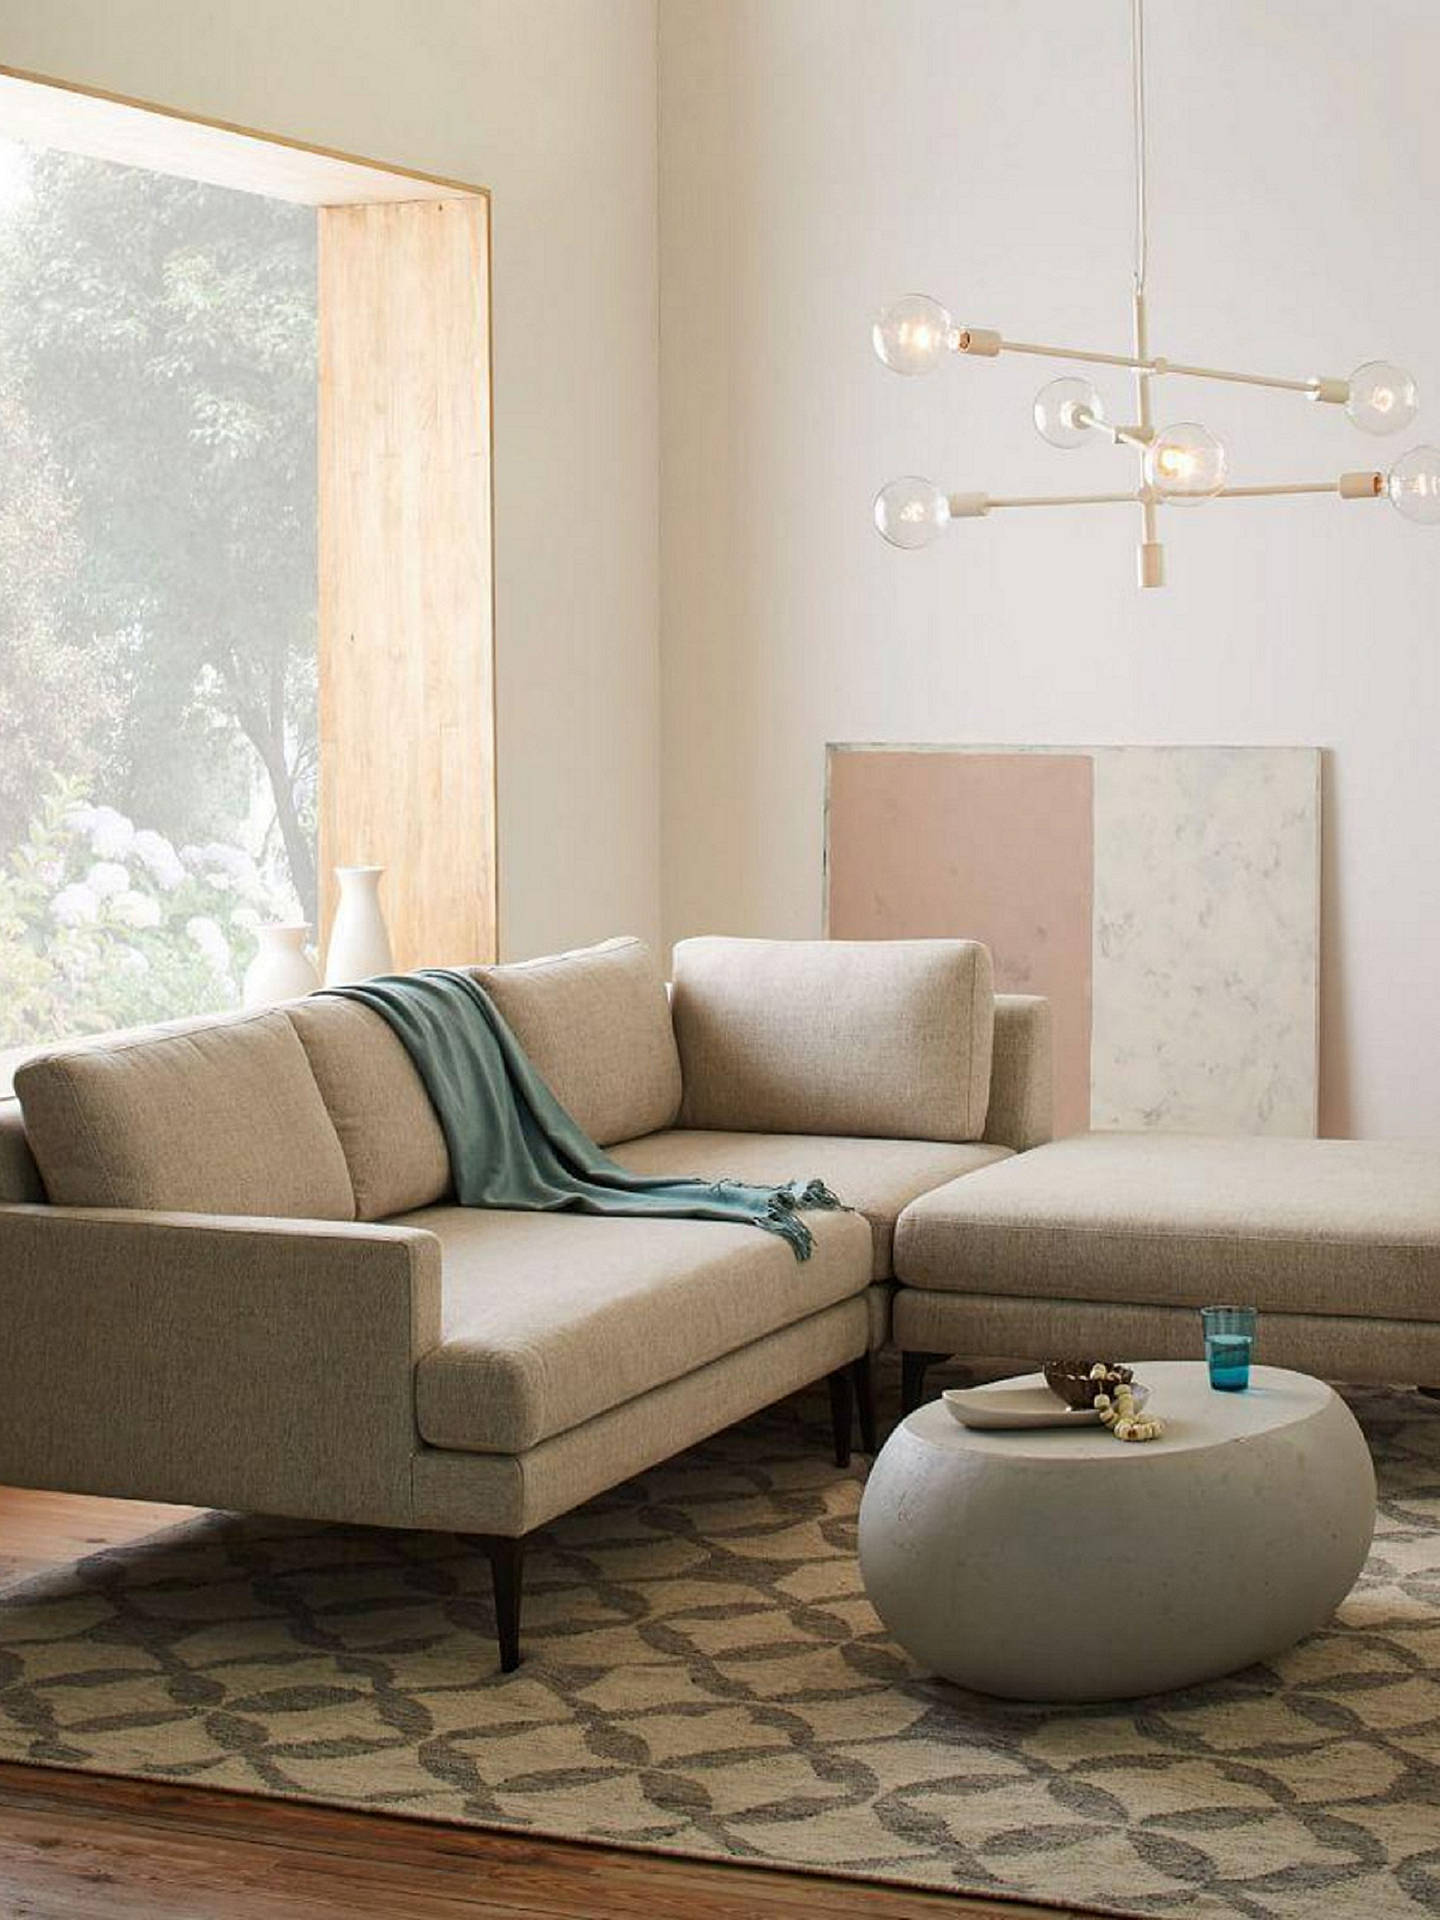 Cool West Elm Andes Large 3 Seater Rhf Sectional Sofa Granite Alphanode Cool Chair Designs And Ideas Alphanodeonline